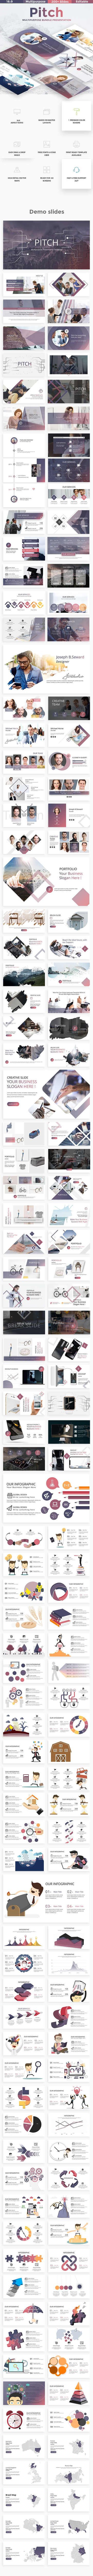 Pitch #Multipurpose #Google #Slide Template - Google Slides Presentation Templates